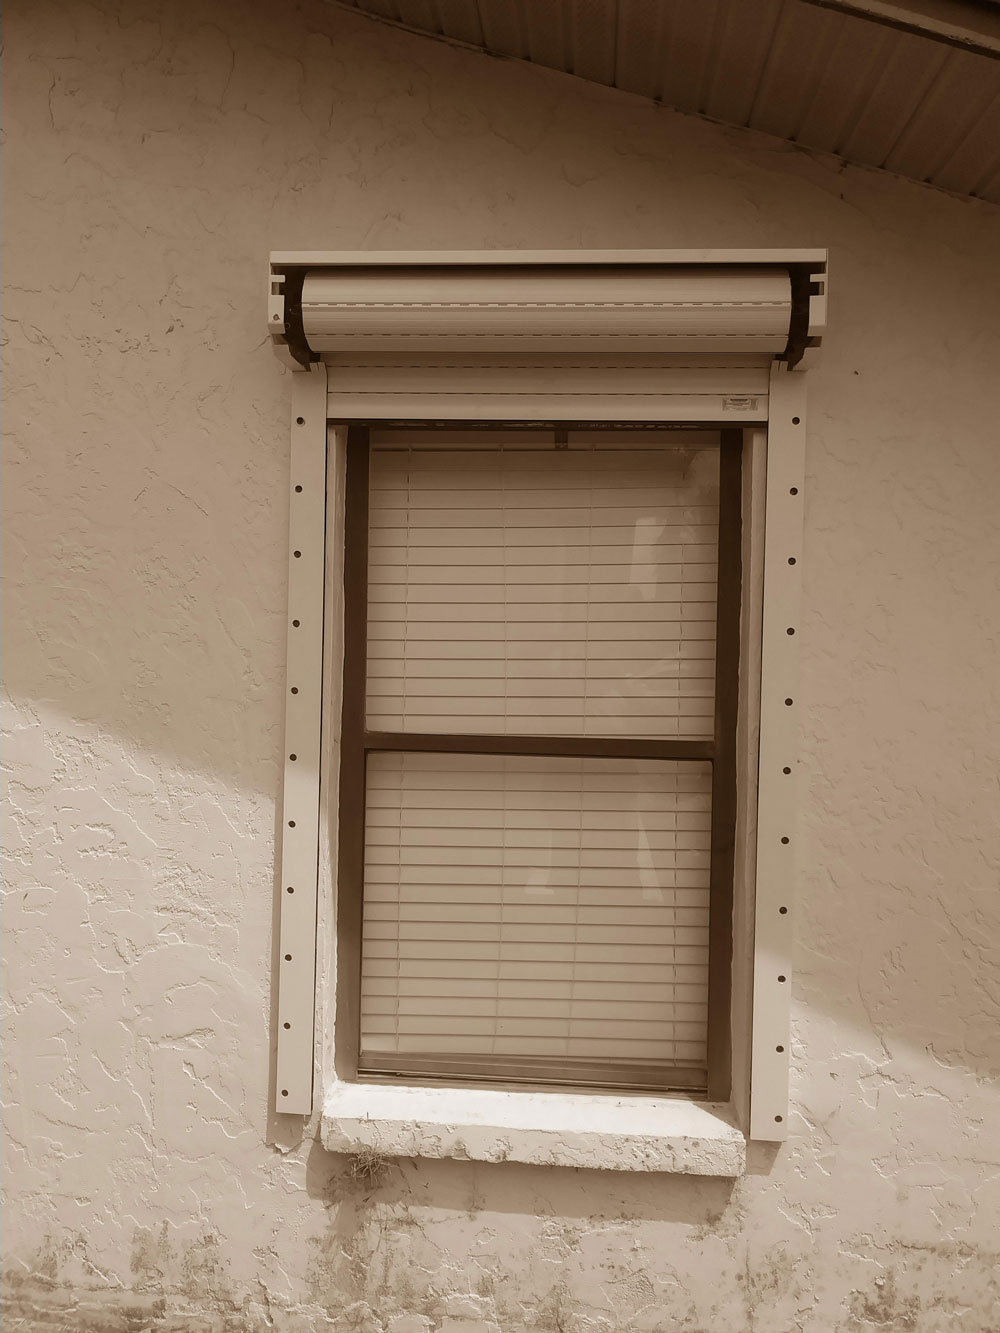 What To Look For In Hurricane Shutters Hurricaneguard